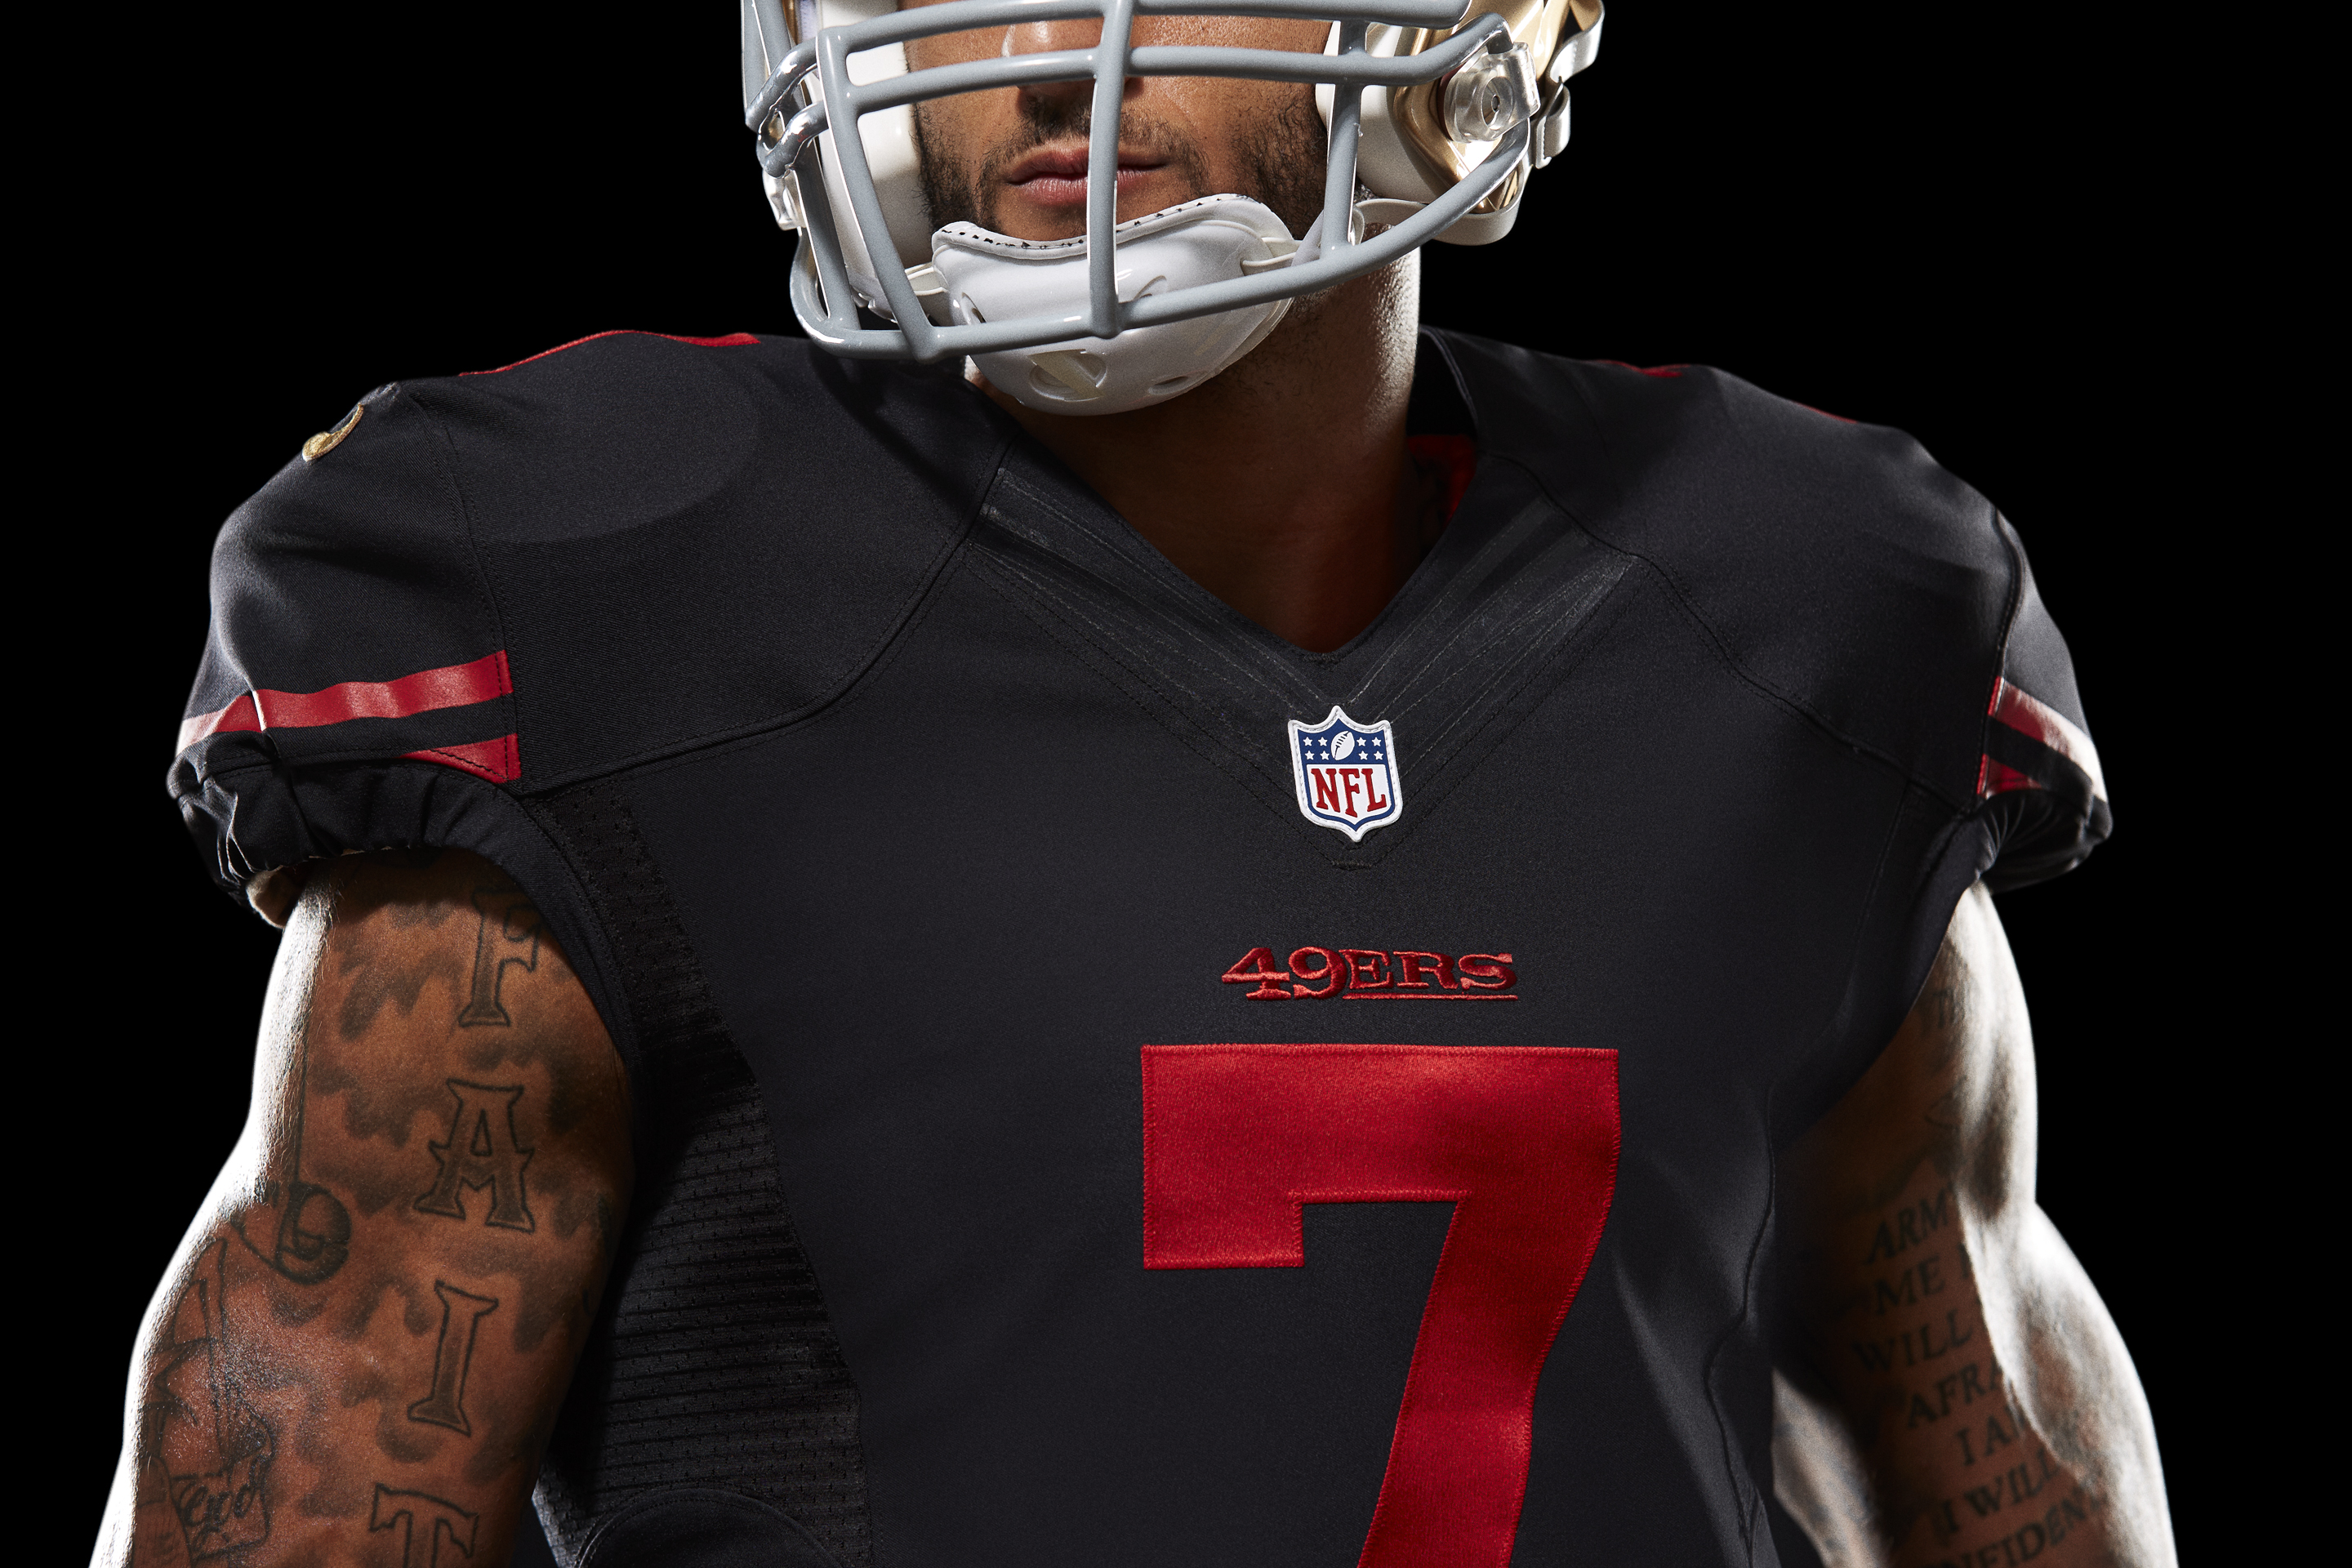 49ers jersey black and red